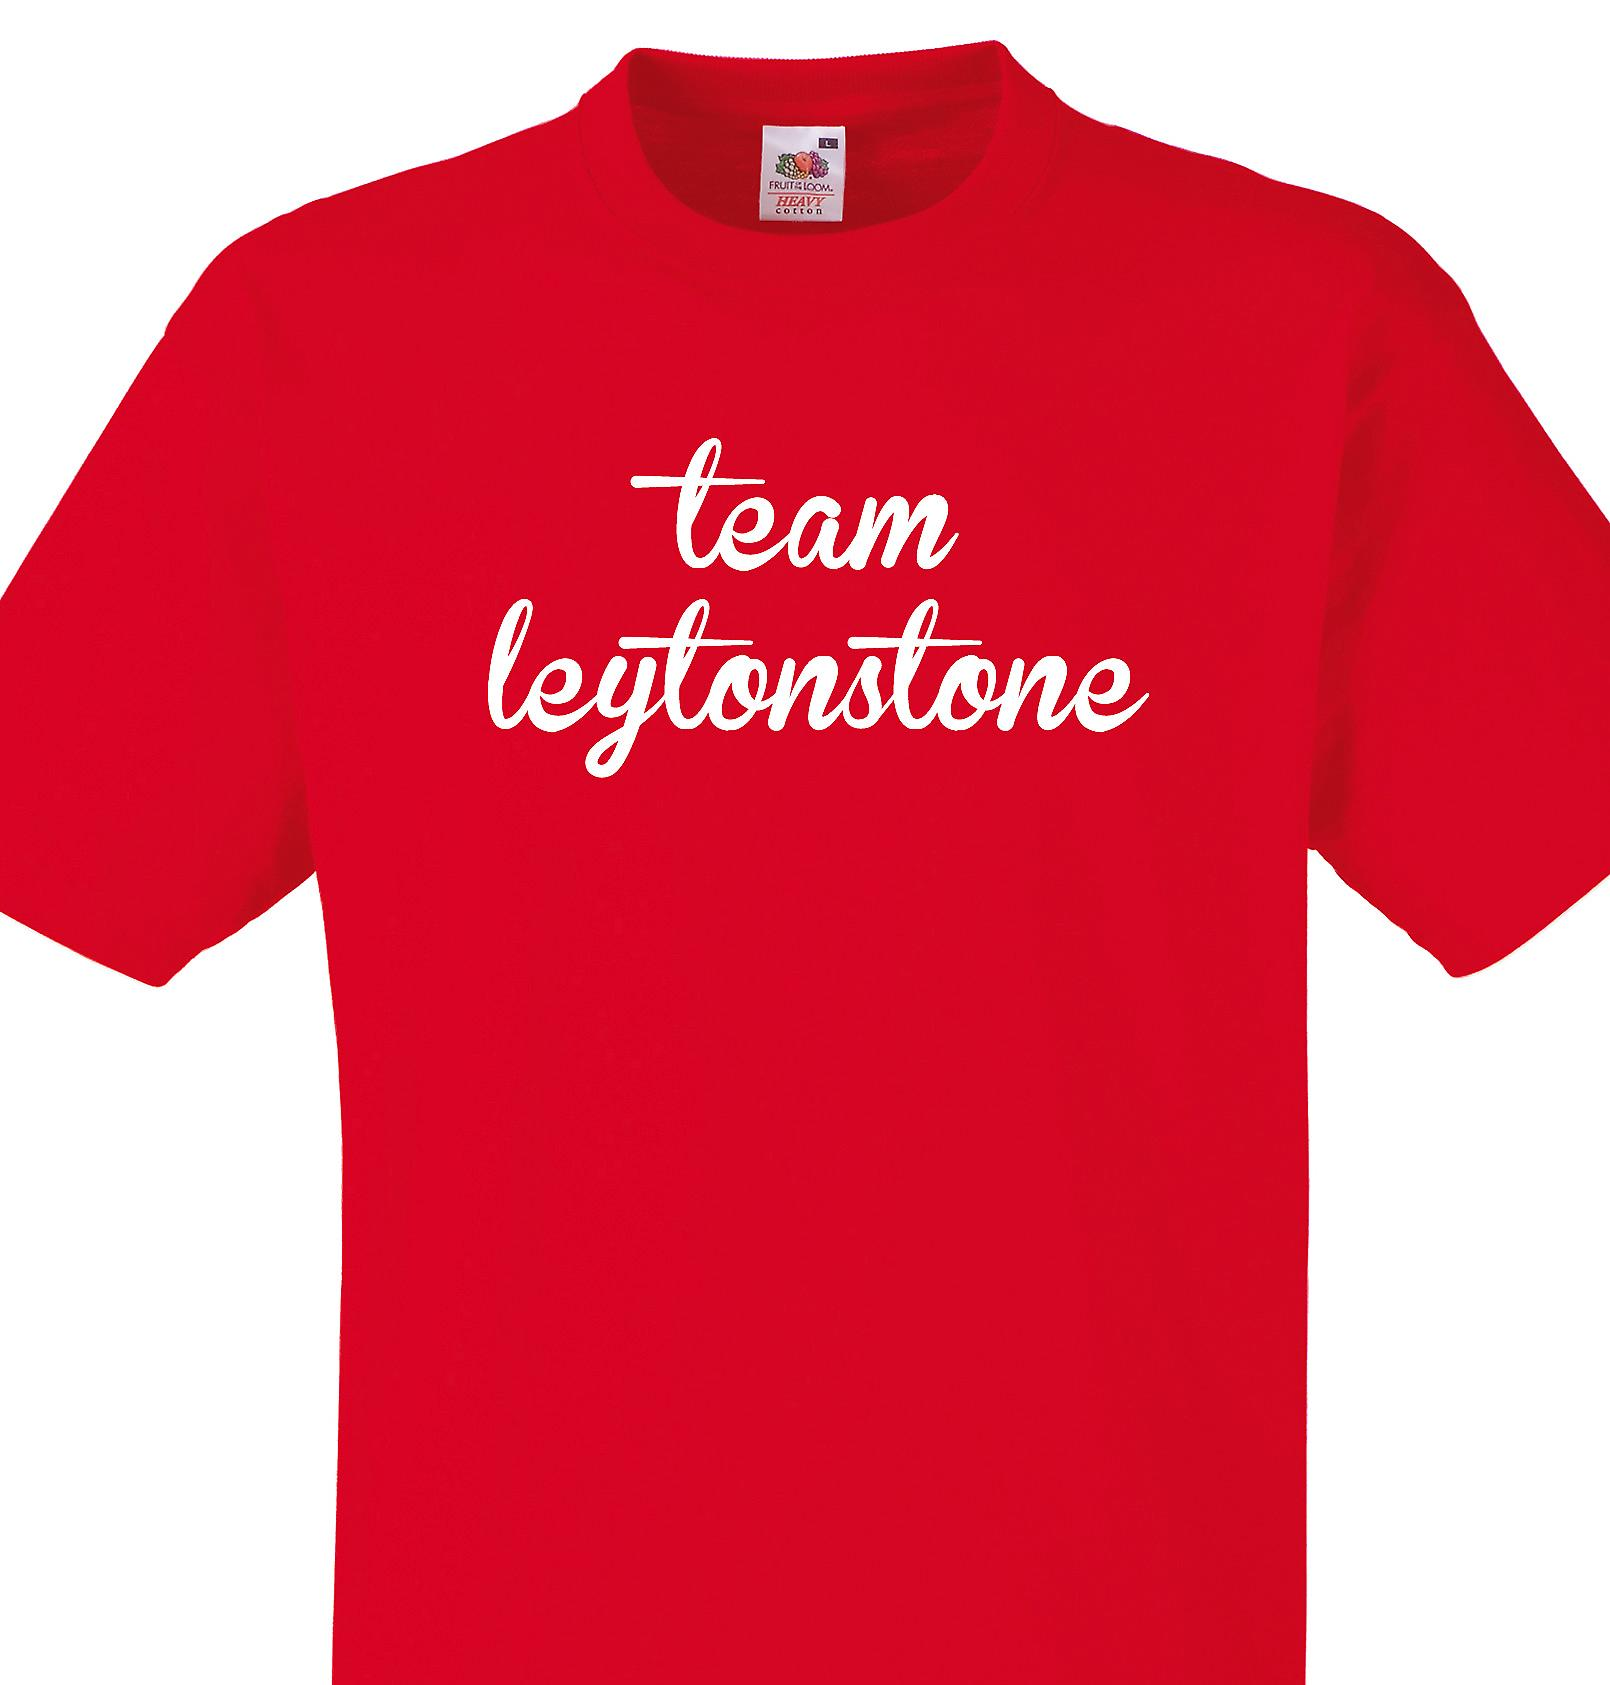 Team Leytonstone Red T shirt